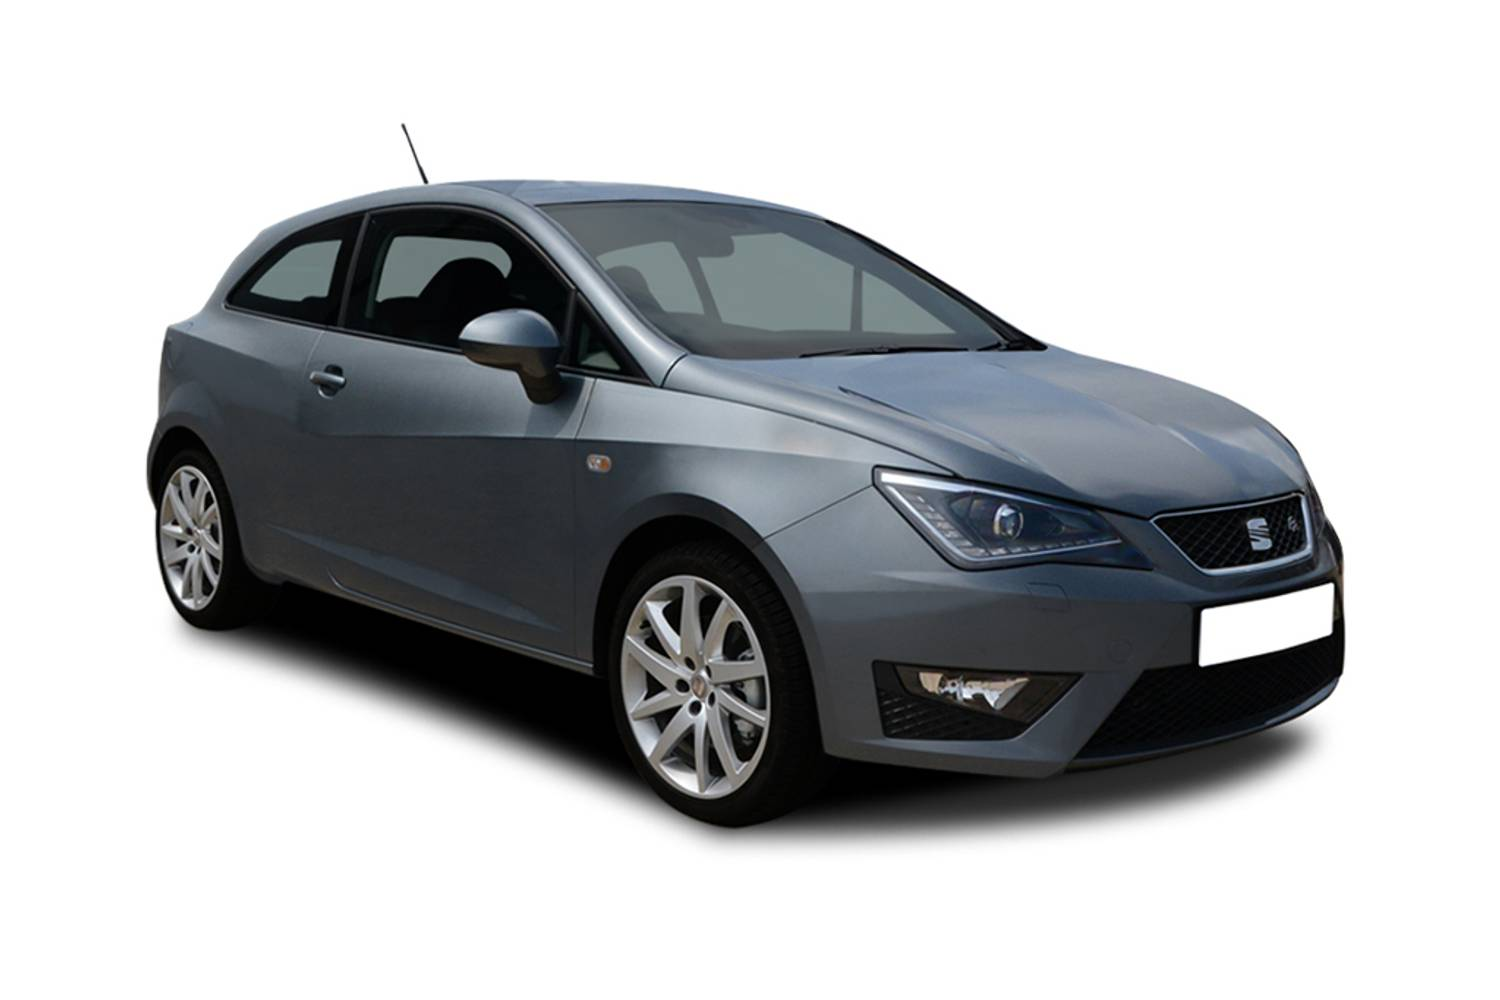 new seat ibiza sport coupe special edition 1 0 sol 3 door 2016 for sale. Black Bedroom Furniture Sets. Home Design Ideas